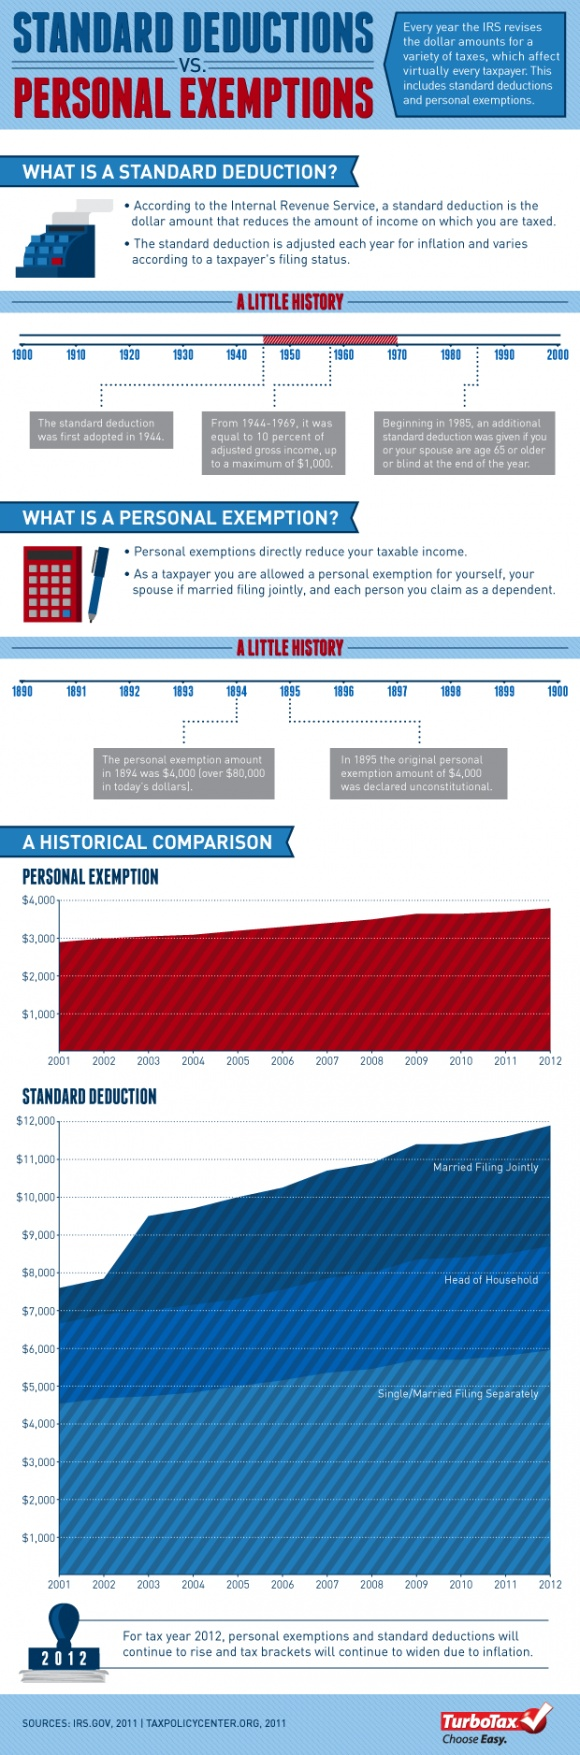 Historical Comparisons of Standard Deductions and PersonalExemptions.